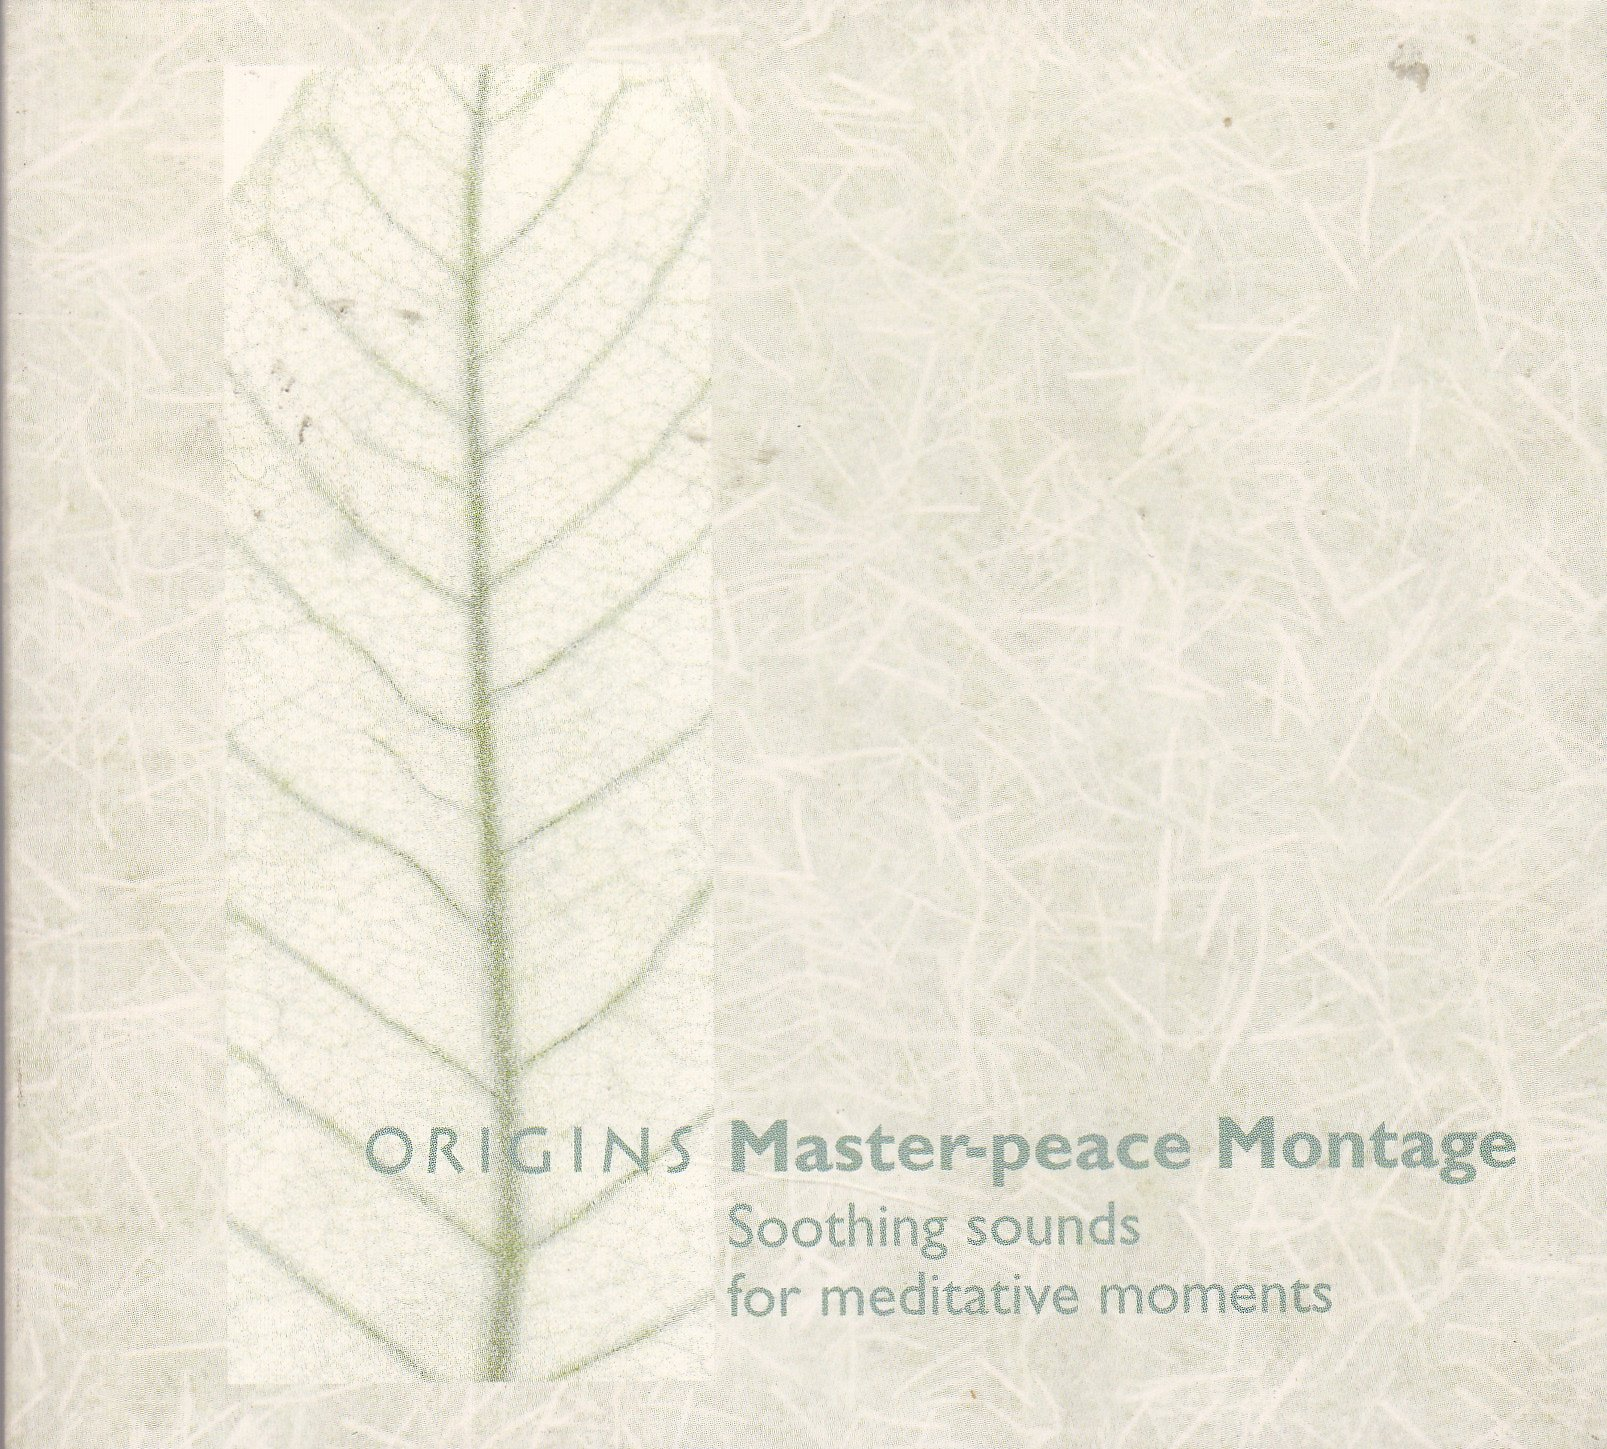 VA - Origins Master-Peace Montage Soothing Sounds For Meditative Moments (2001) [FLAC] Download